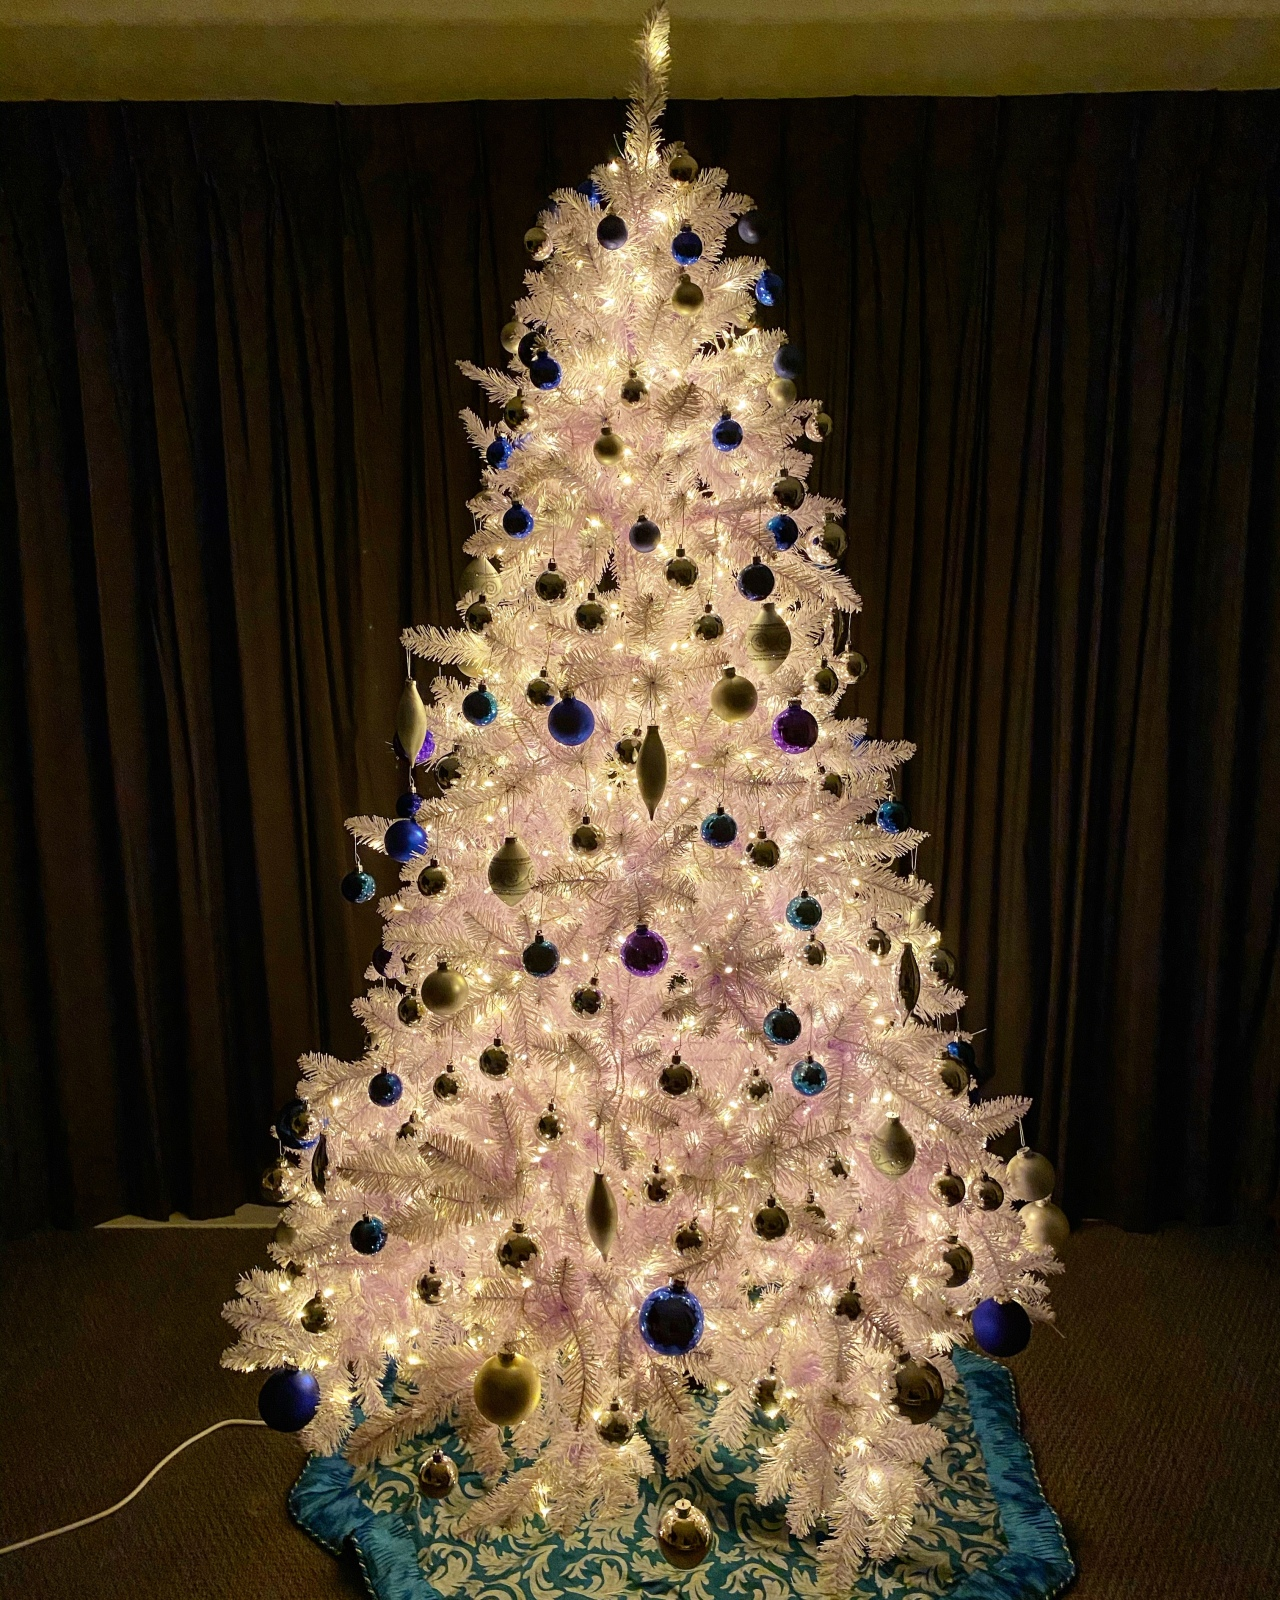 White Christmas tree with blue, teal, and silver ornaments, illuminated with warm white LED lights